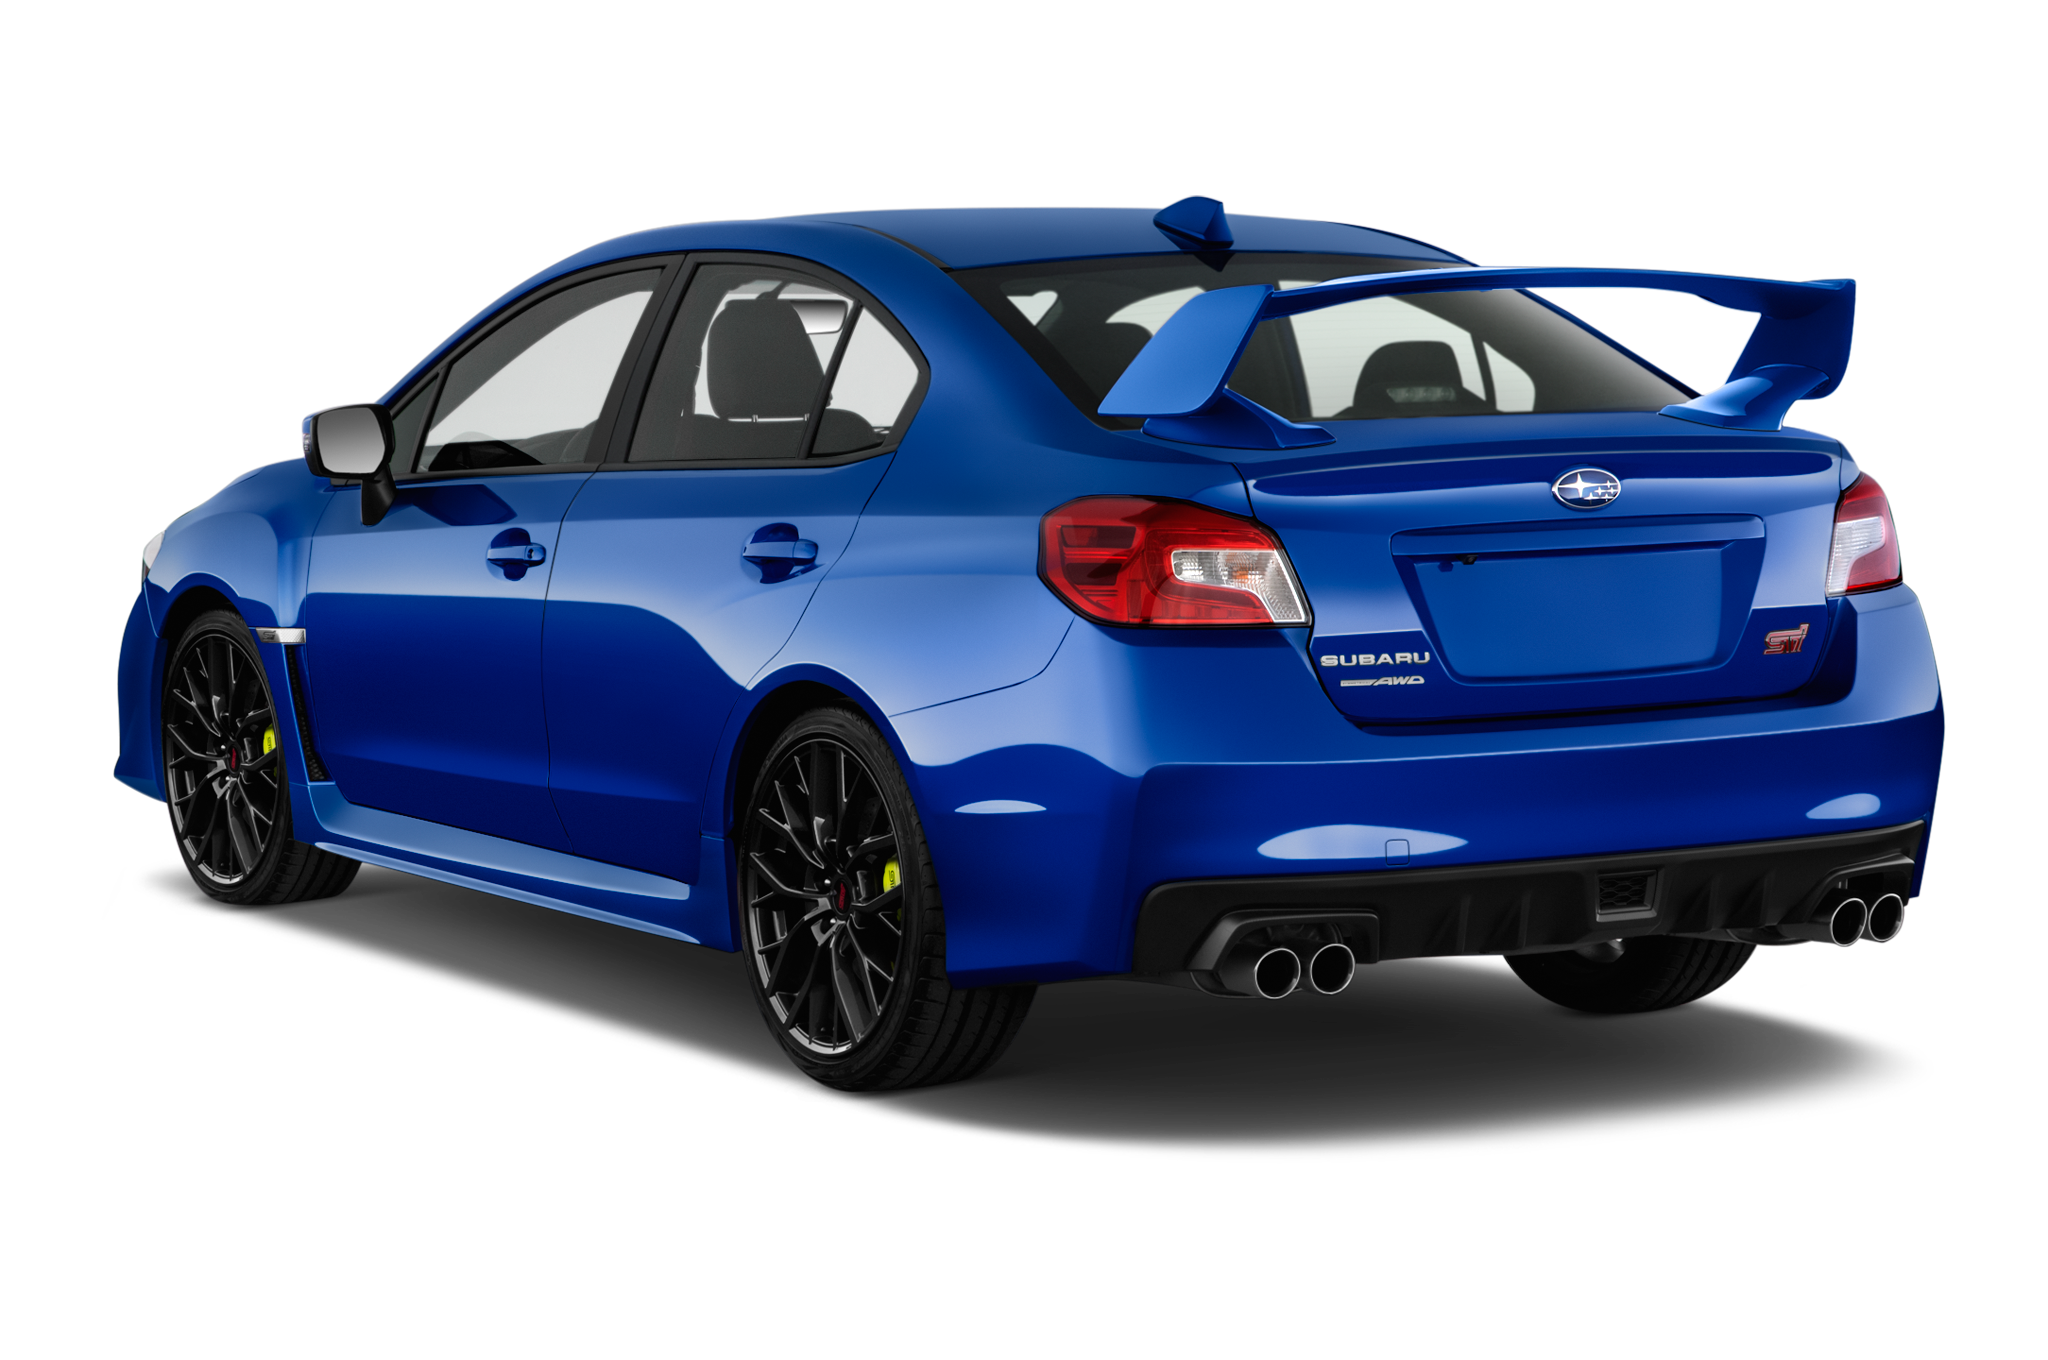 subaru updates the wrx and sti for 2018 with new face. Black Bedroom Furniture Sets. Home Design Ideas